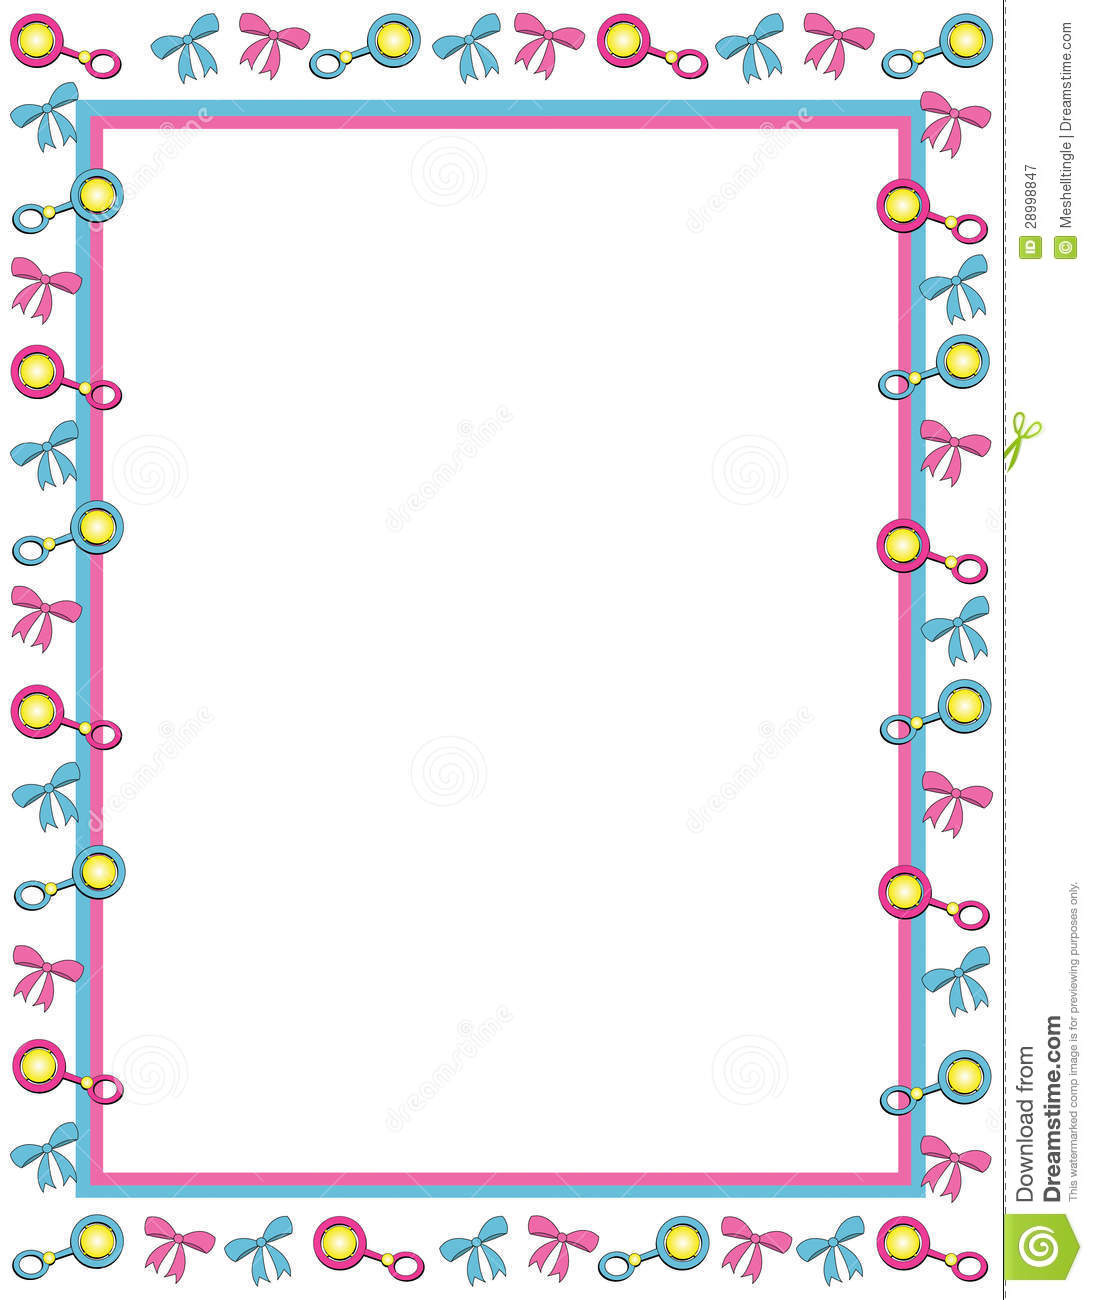 Page border incep imagine. Baby clipart frame